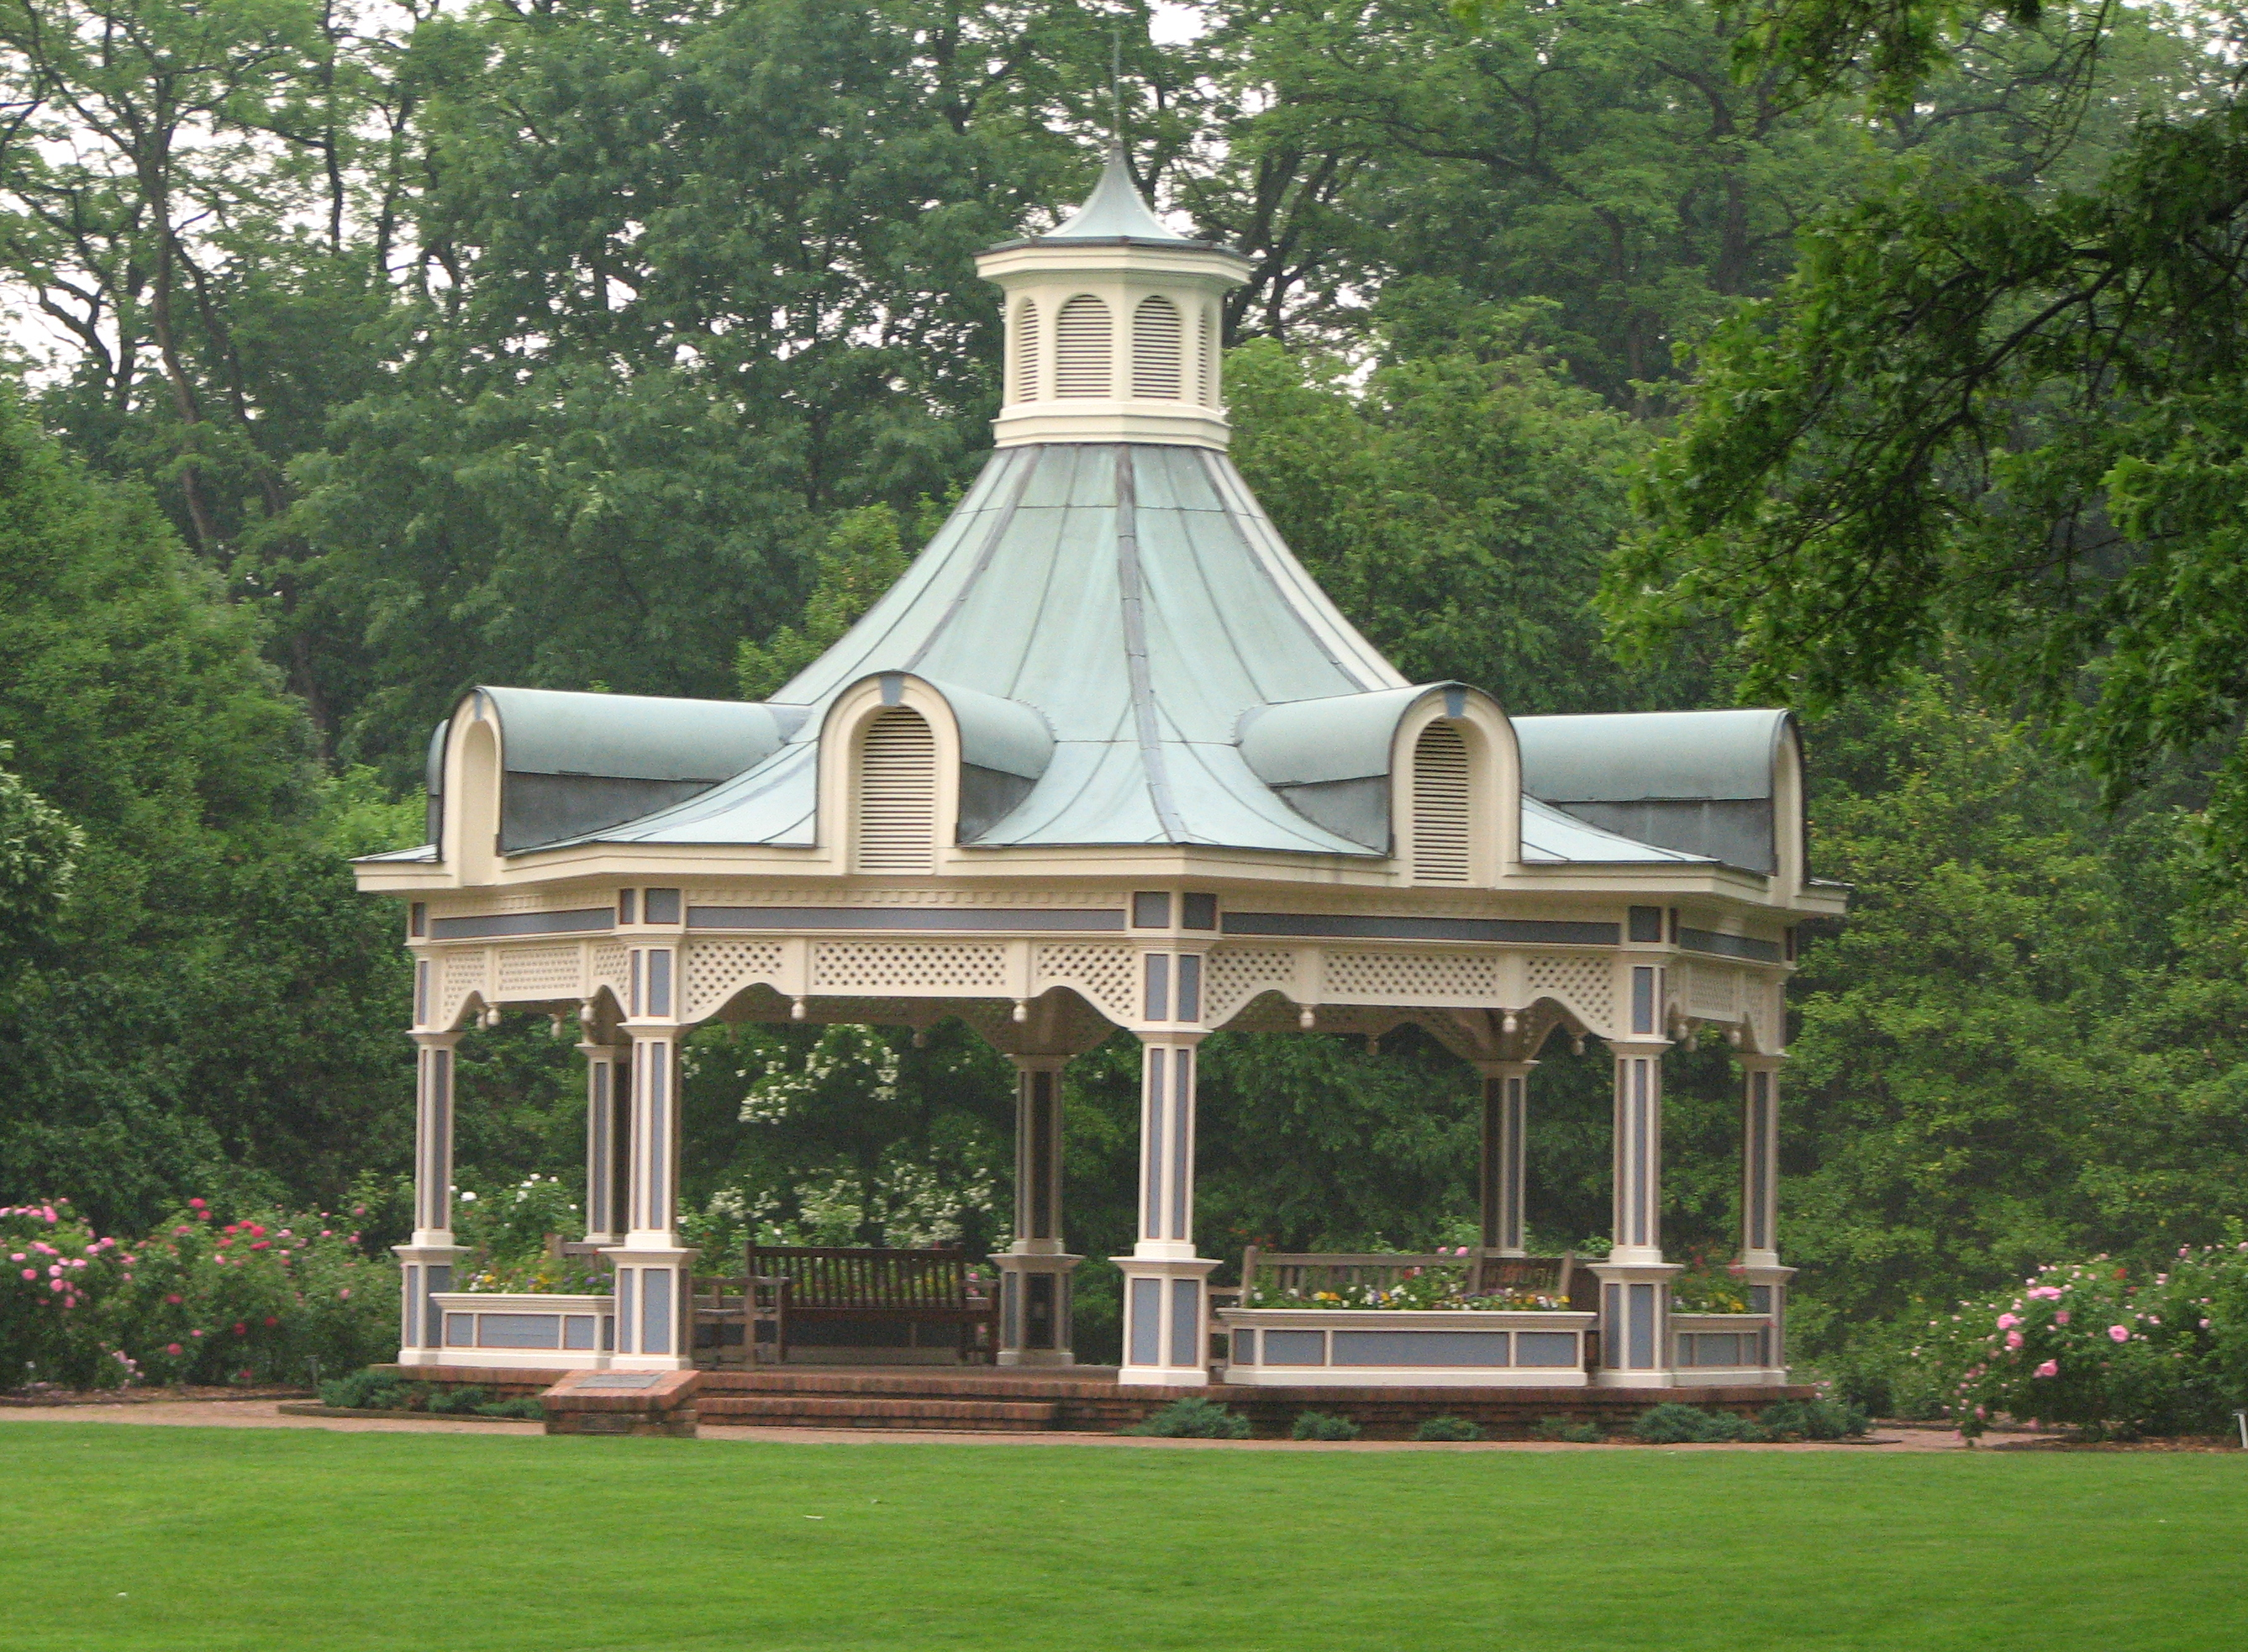 IMAGE(https://upload.wikimedia.org/wikipedia/commons/f/f4/Victorian_Gazebo.jpg)